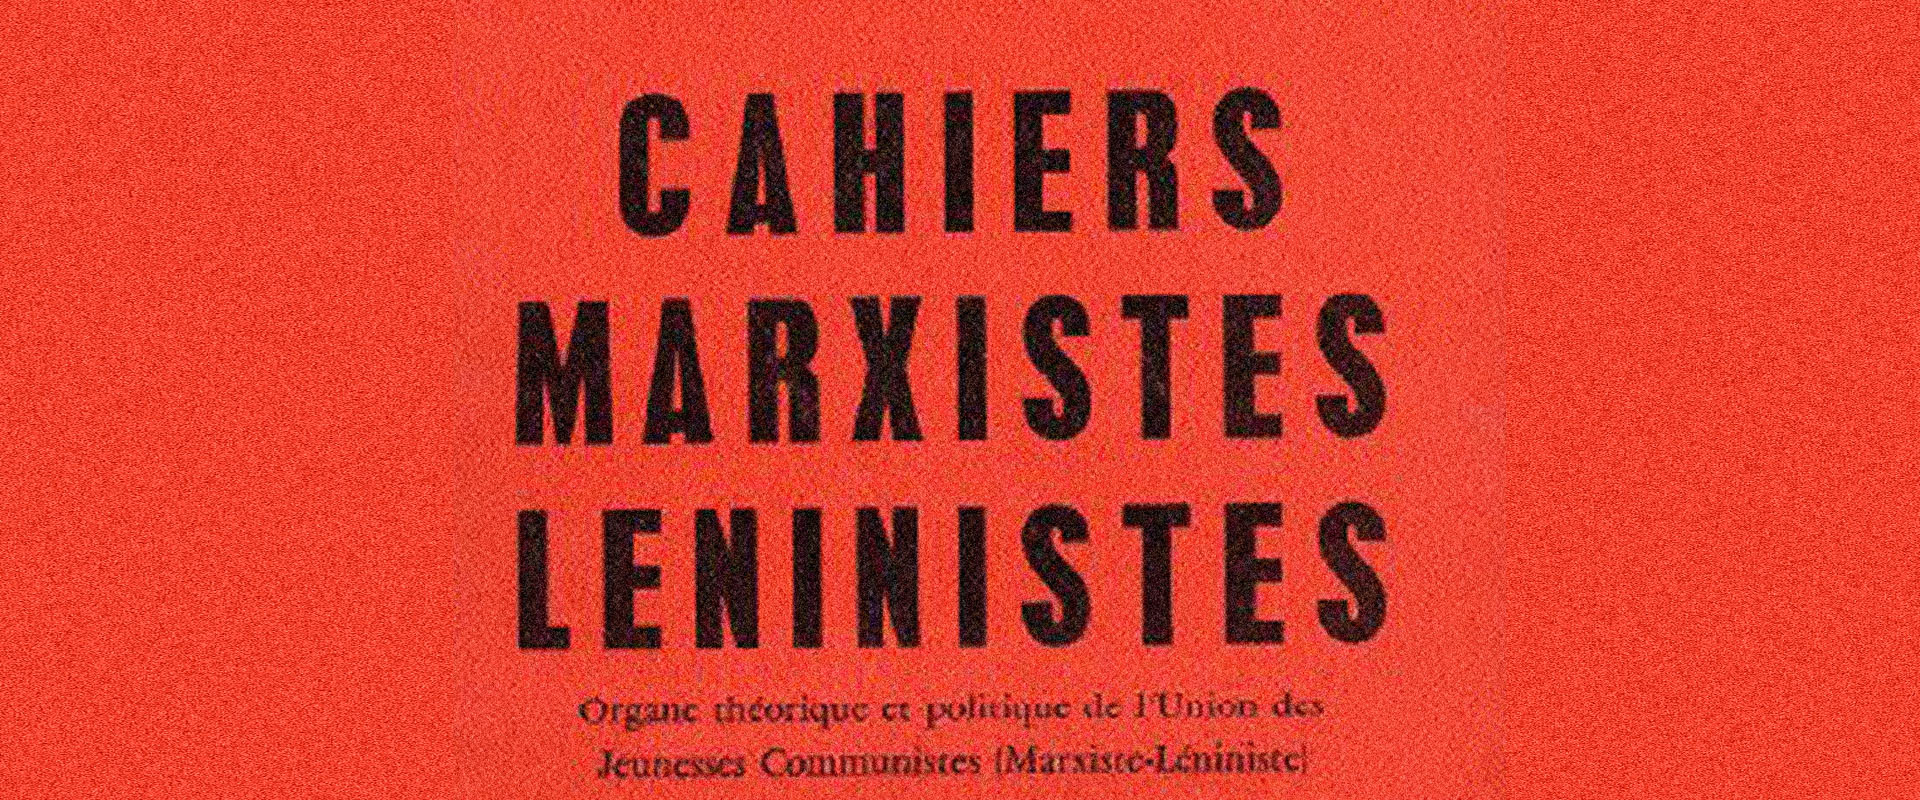 Cahiers Marxistes